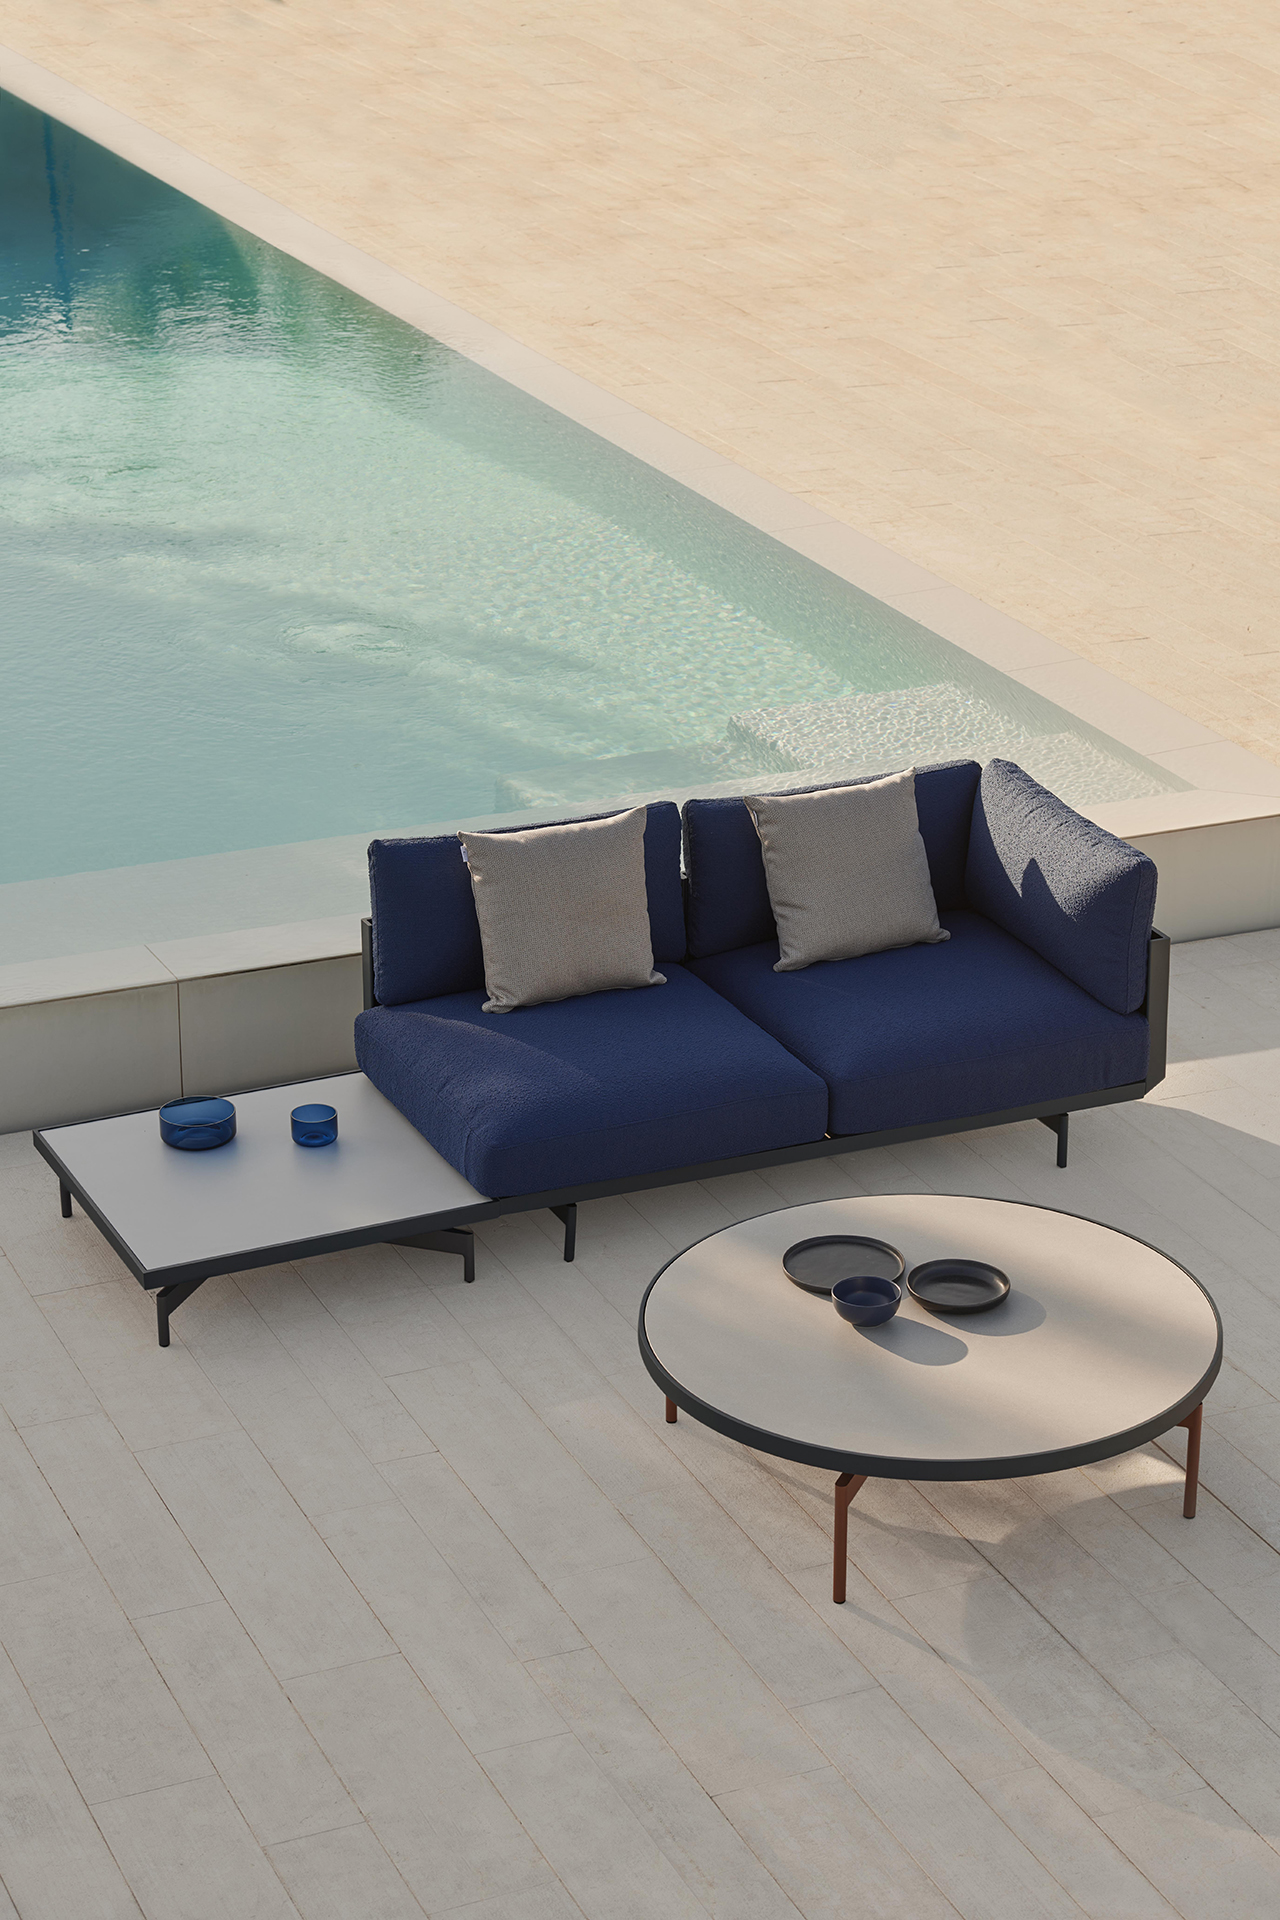 outdoor furniture poolside